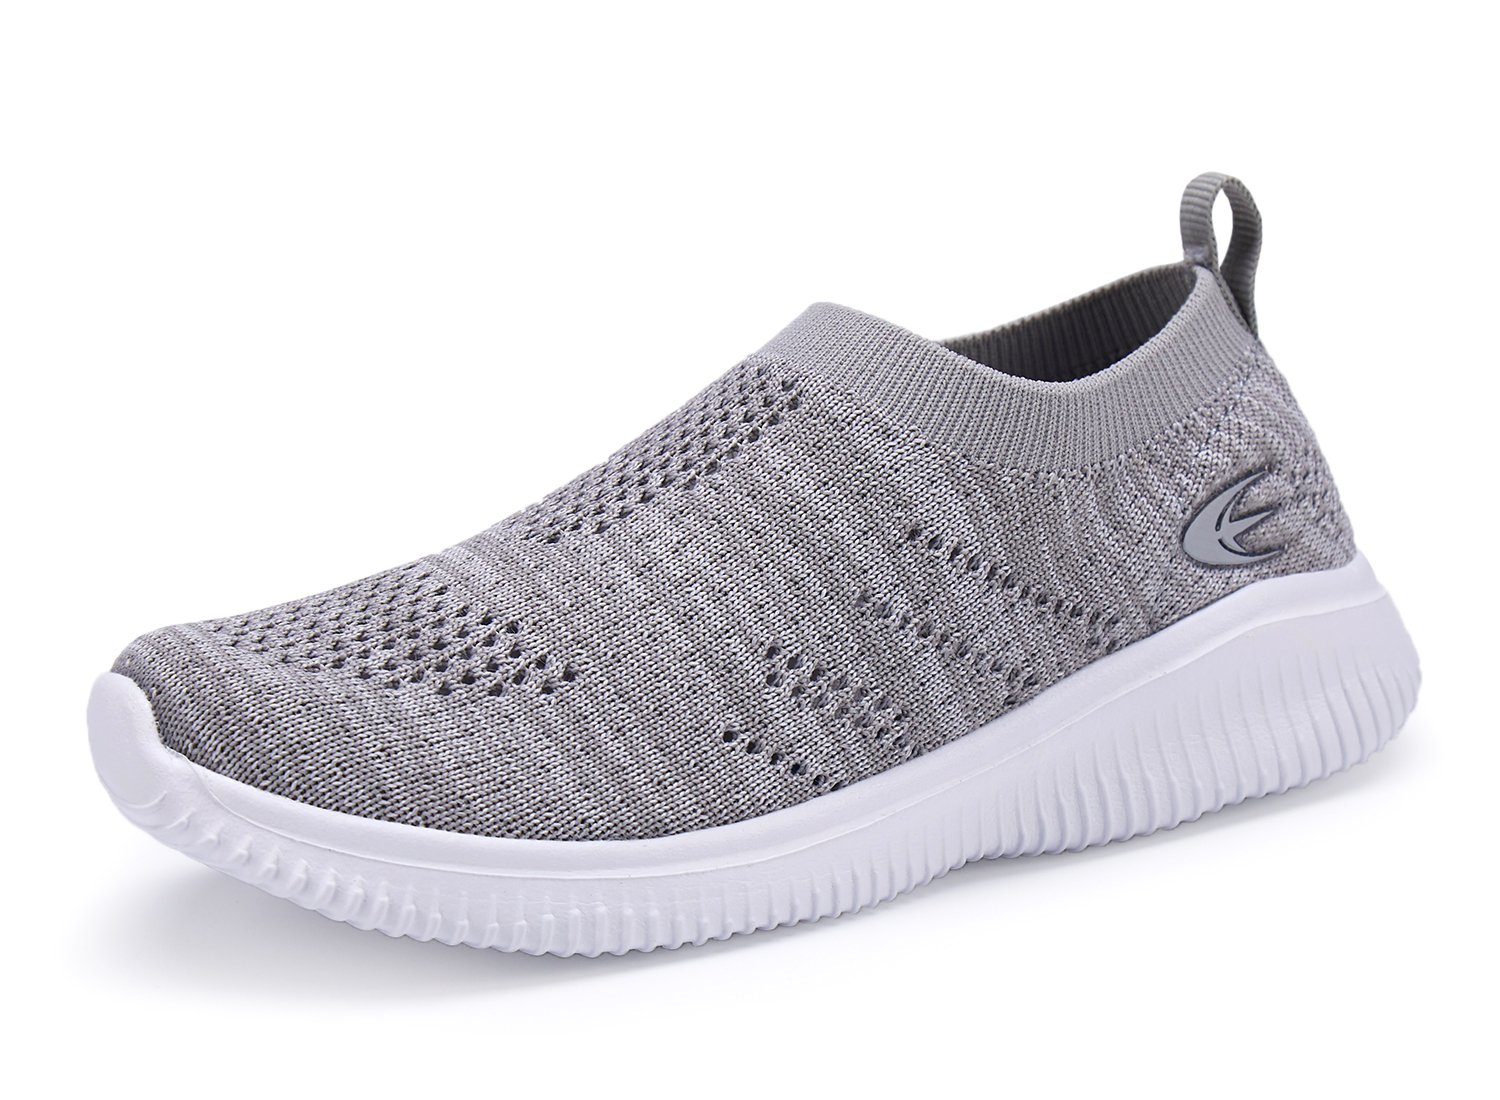 Leader shoes Kids' Slip-On Shoes Boys and Girls Lightweight Breathable Walking Sneakers (1, Grey)